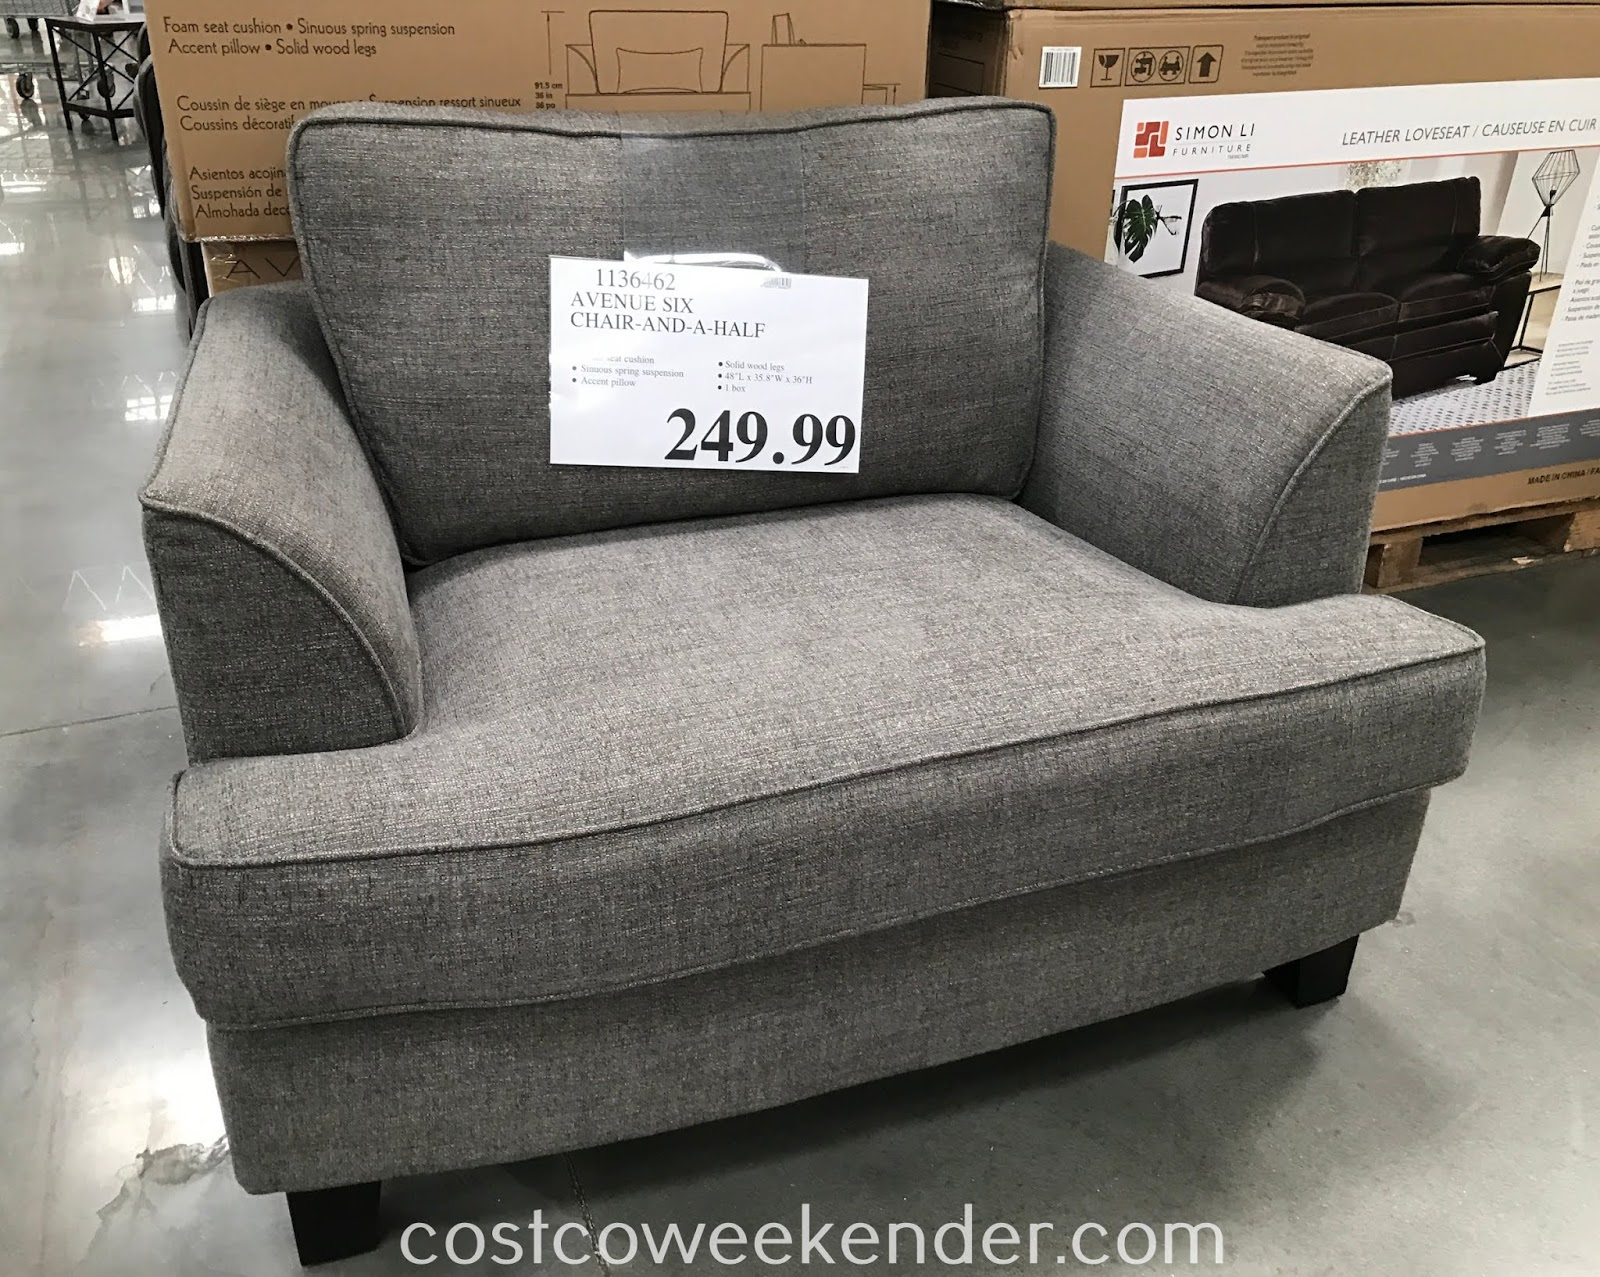 Ave Six Chair Teak Chaise Lounge Chairs Avenue Fabric And A Half Costco Weekender Relax In Comfort On The